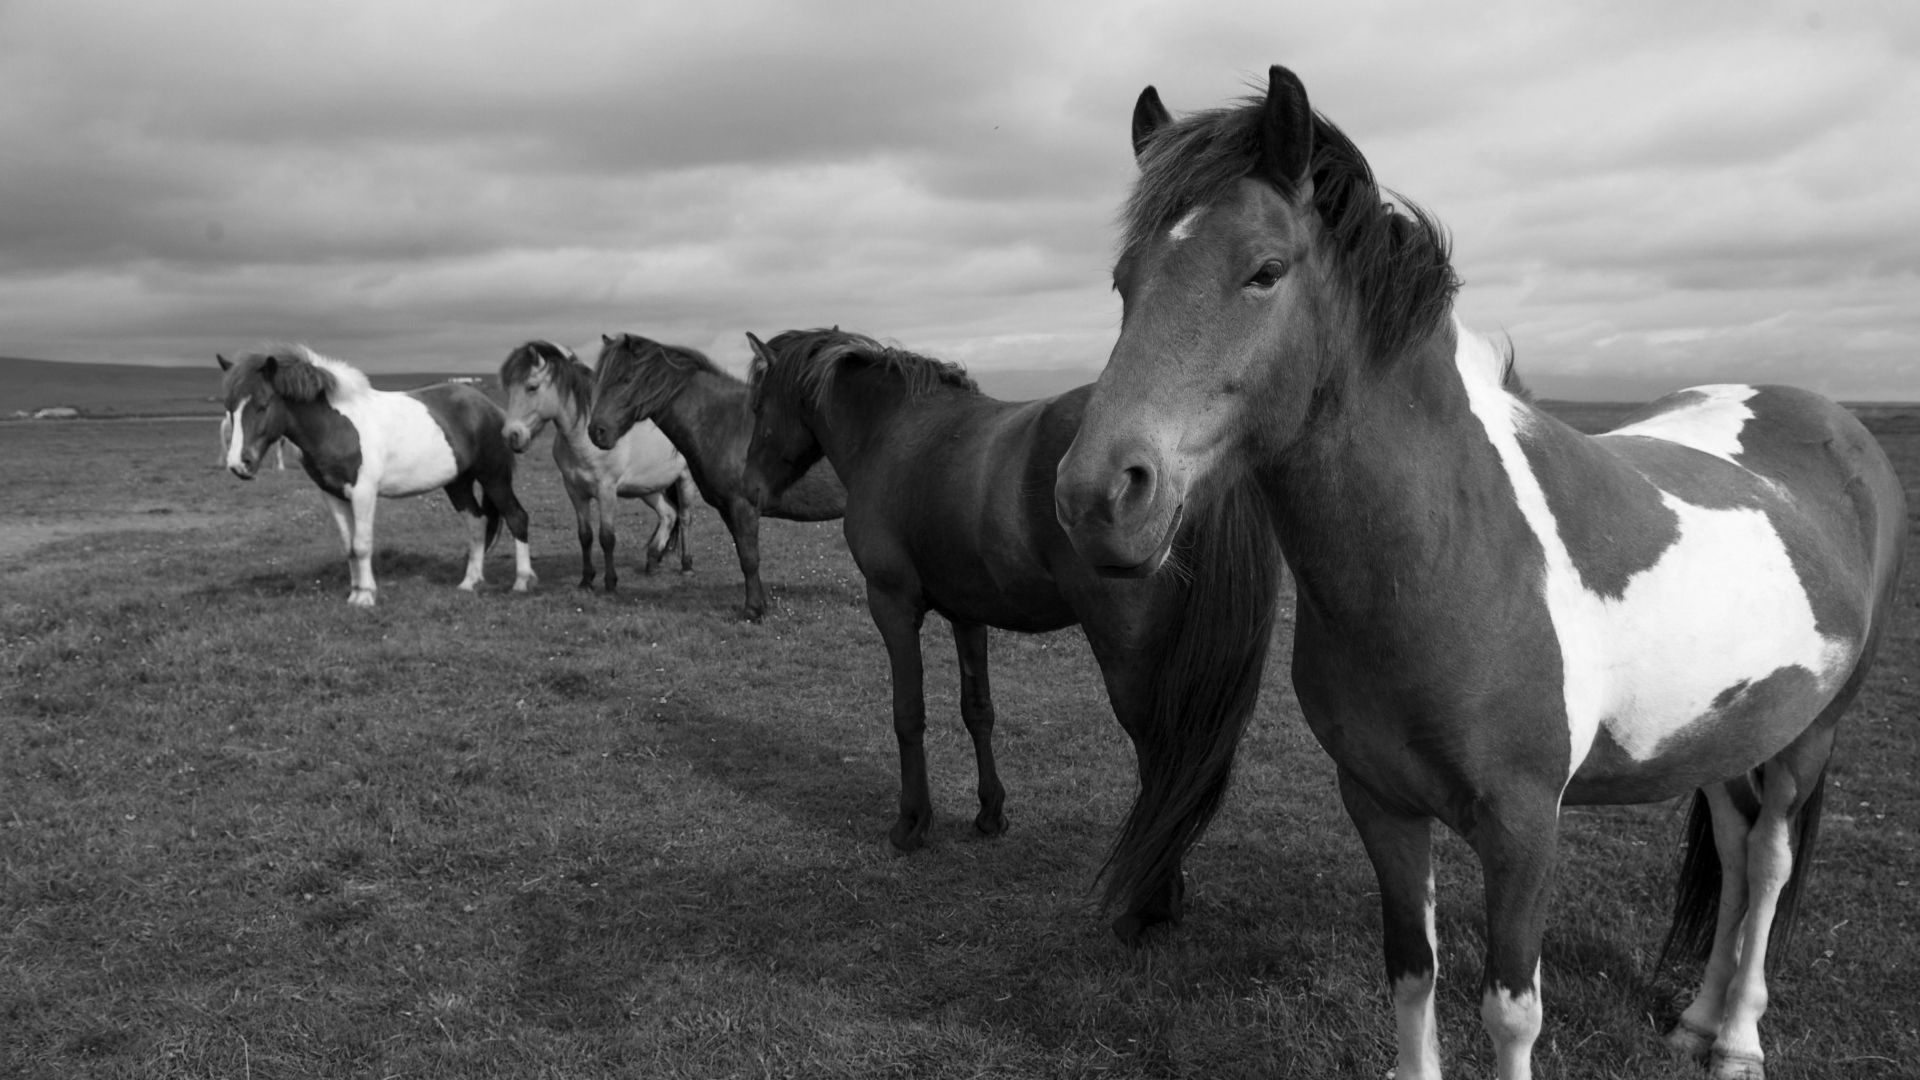 A Herd Of Horses Photo